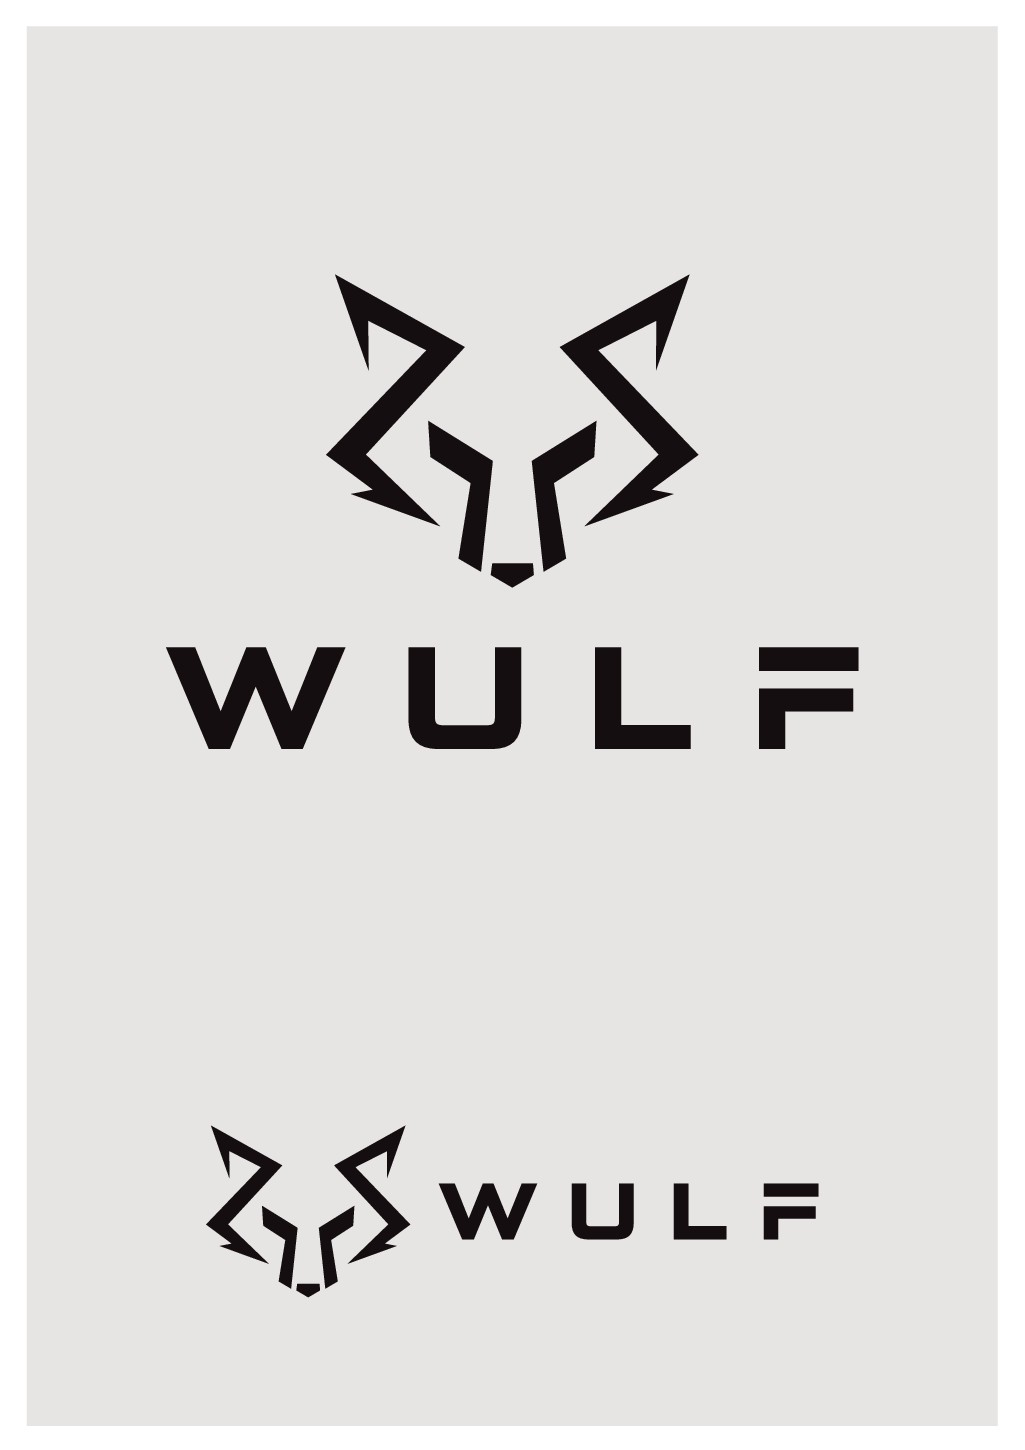 Design a geometric logo for a new gym and fitness clothing brand